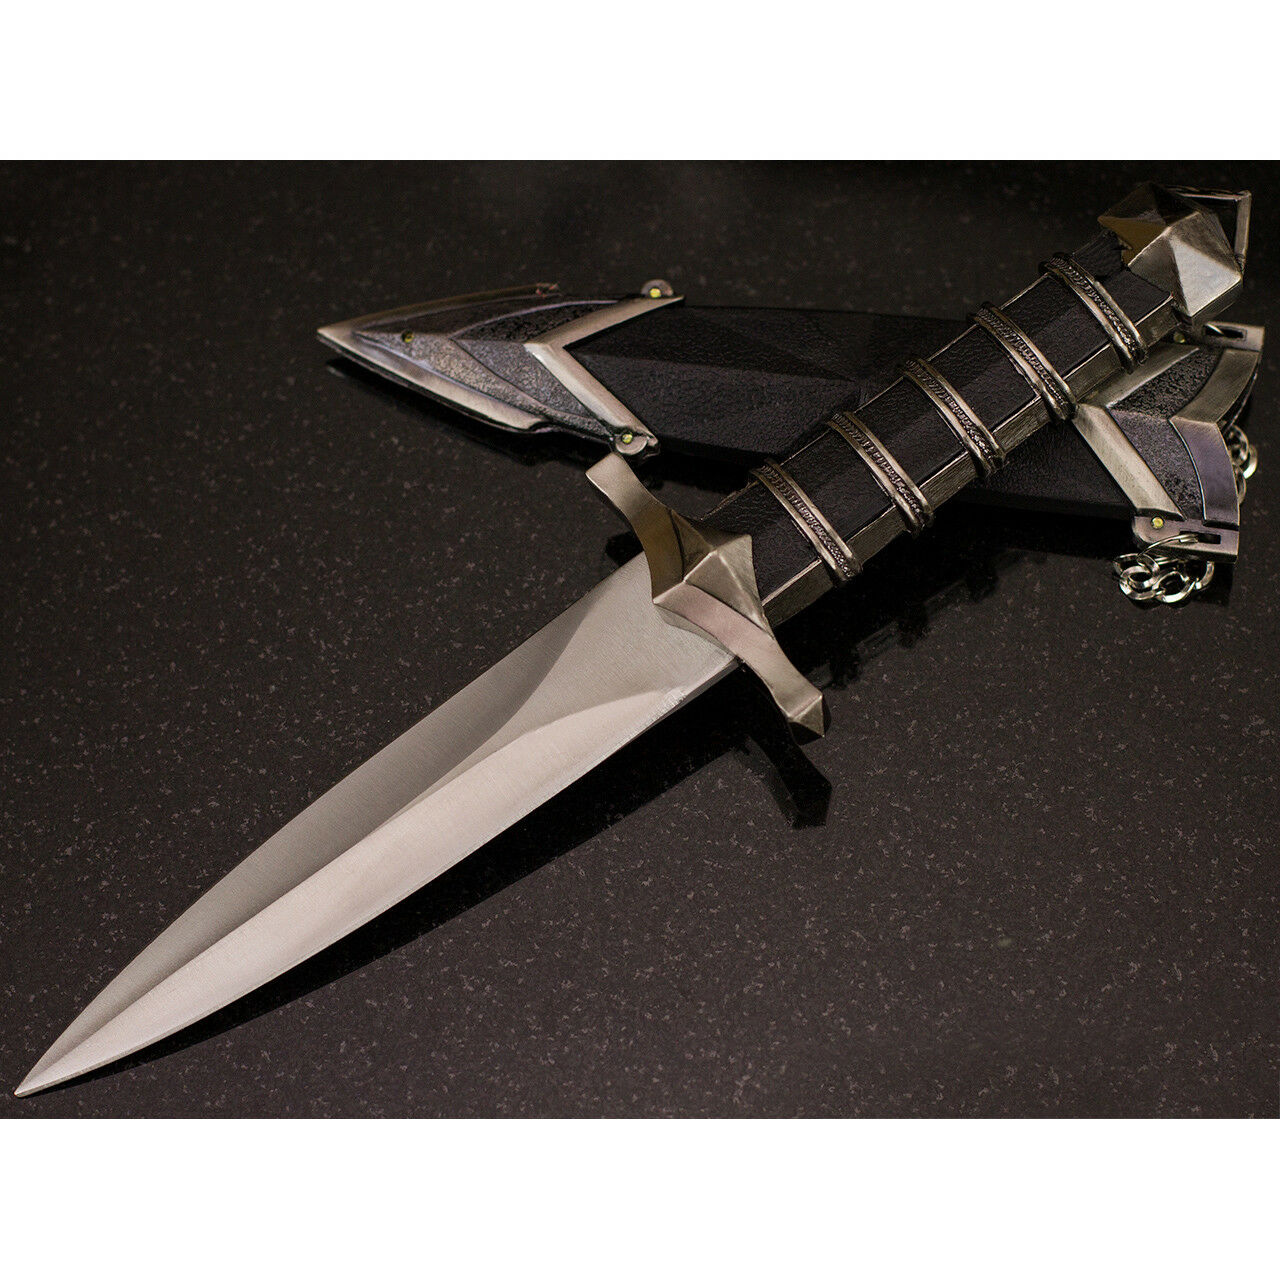 "11.5"" DARK ASSASSIN STAINLESS STEEL MEDIEVAL SHORT SWORD DAGGER w/ SHEATH"